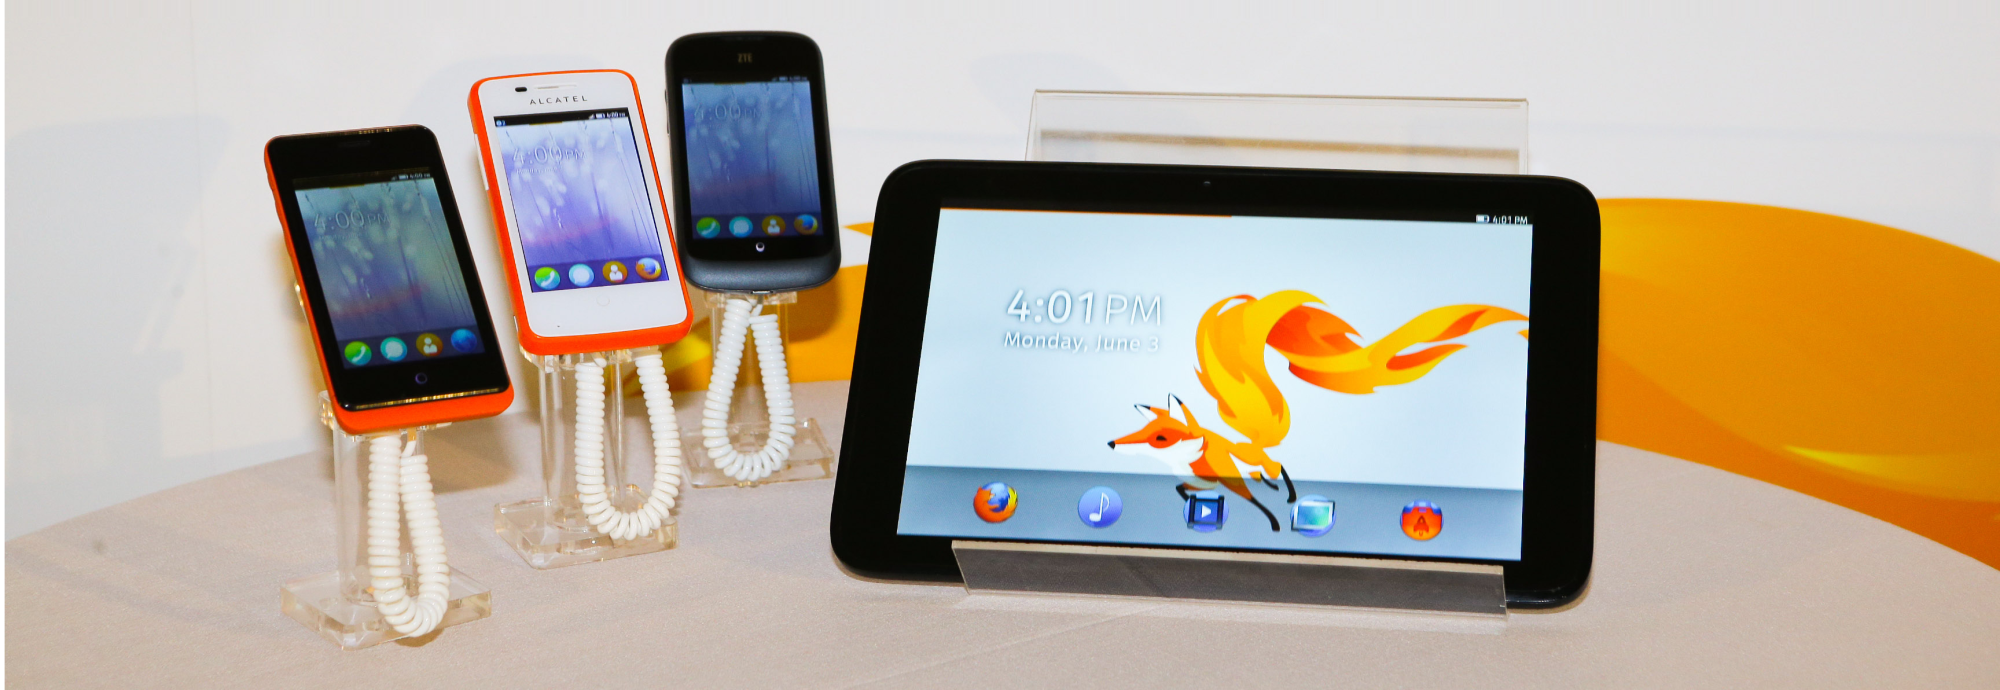 Mozilla partners with Panasonic to bring Firefox OS to the TV, details work on tablet and desktop versions